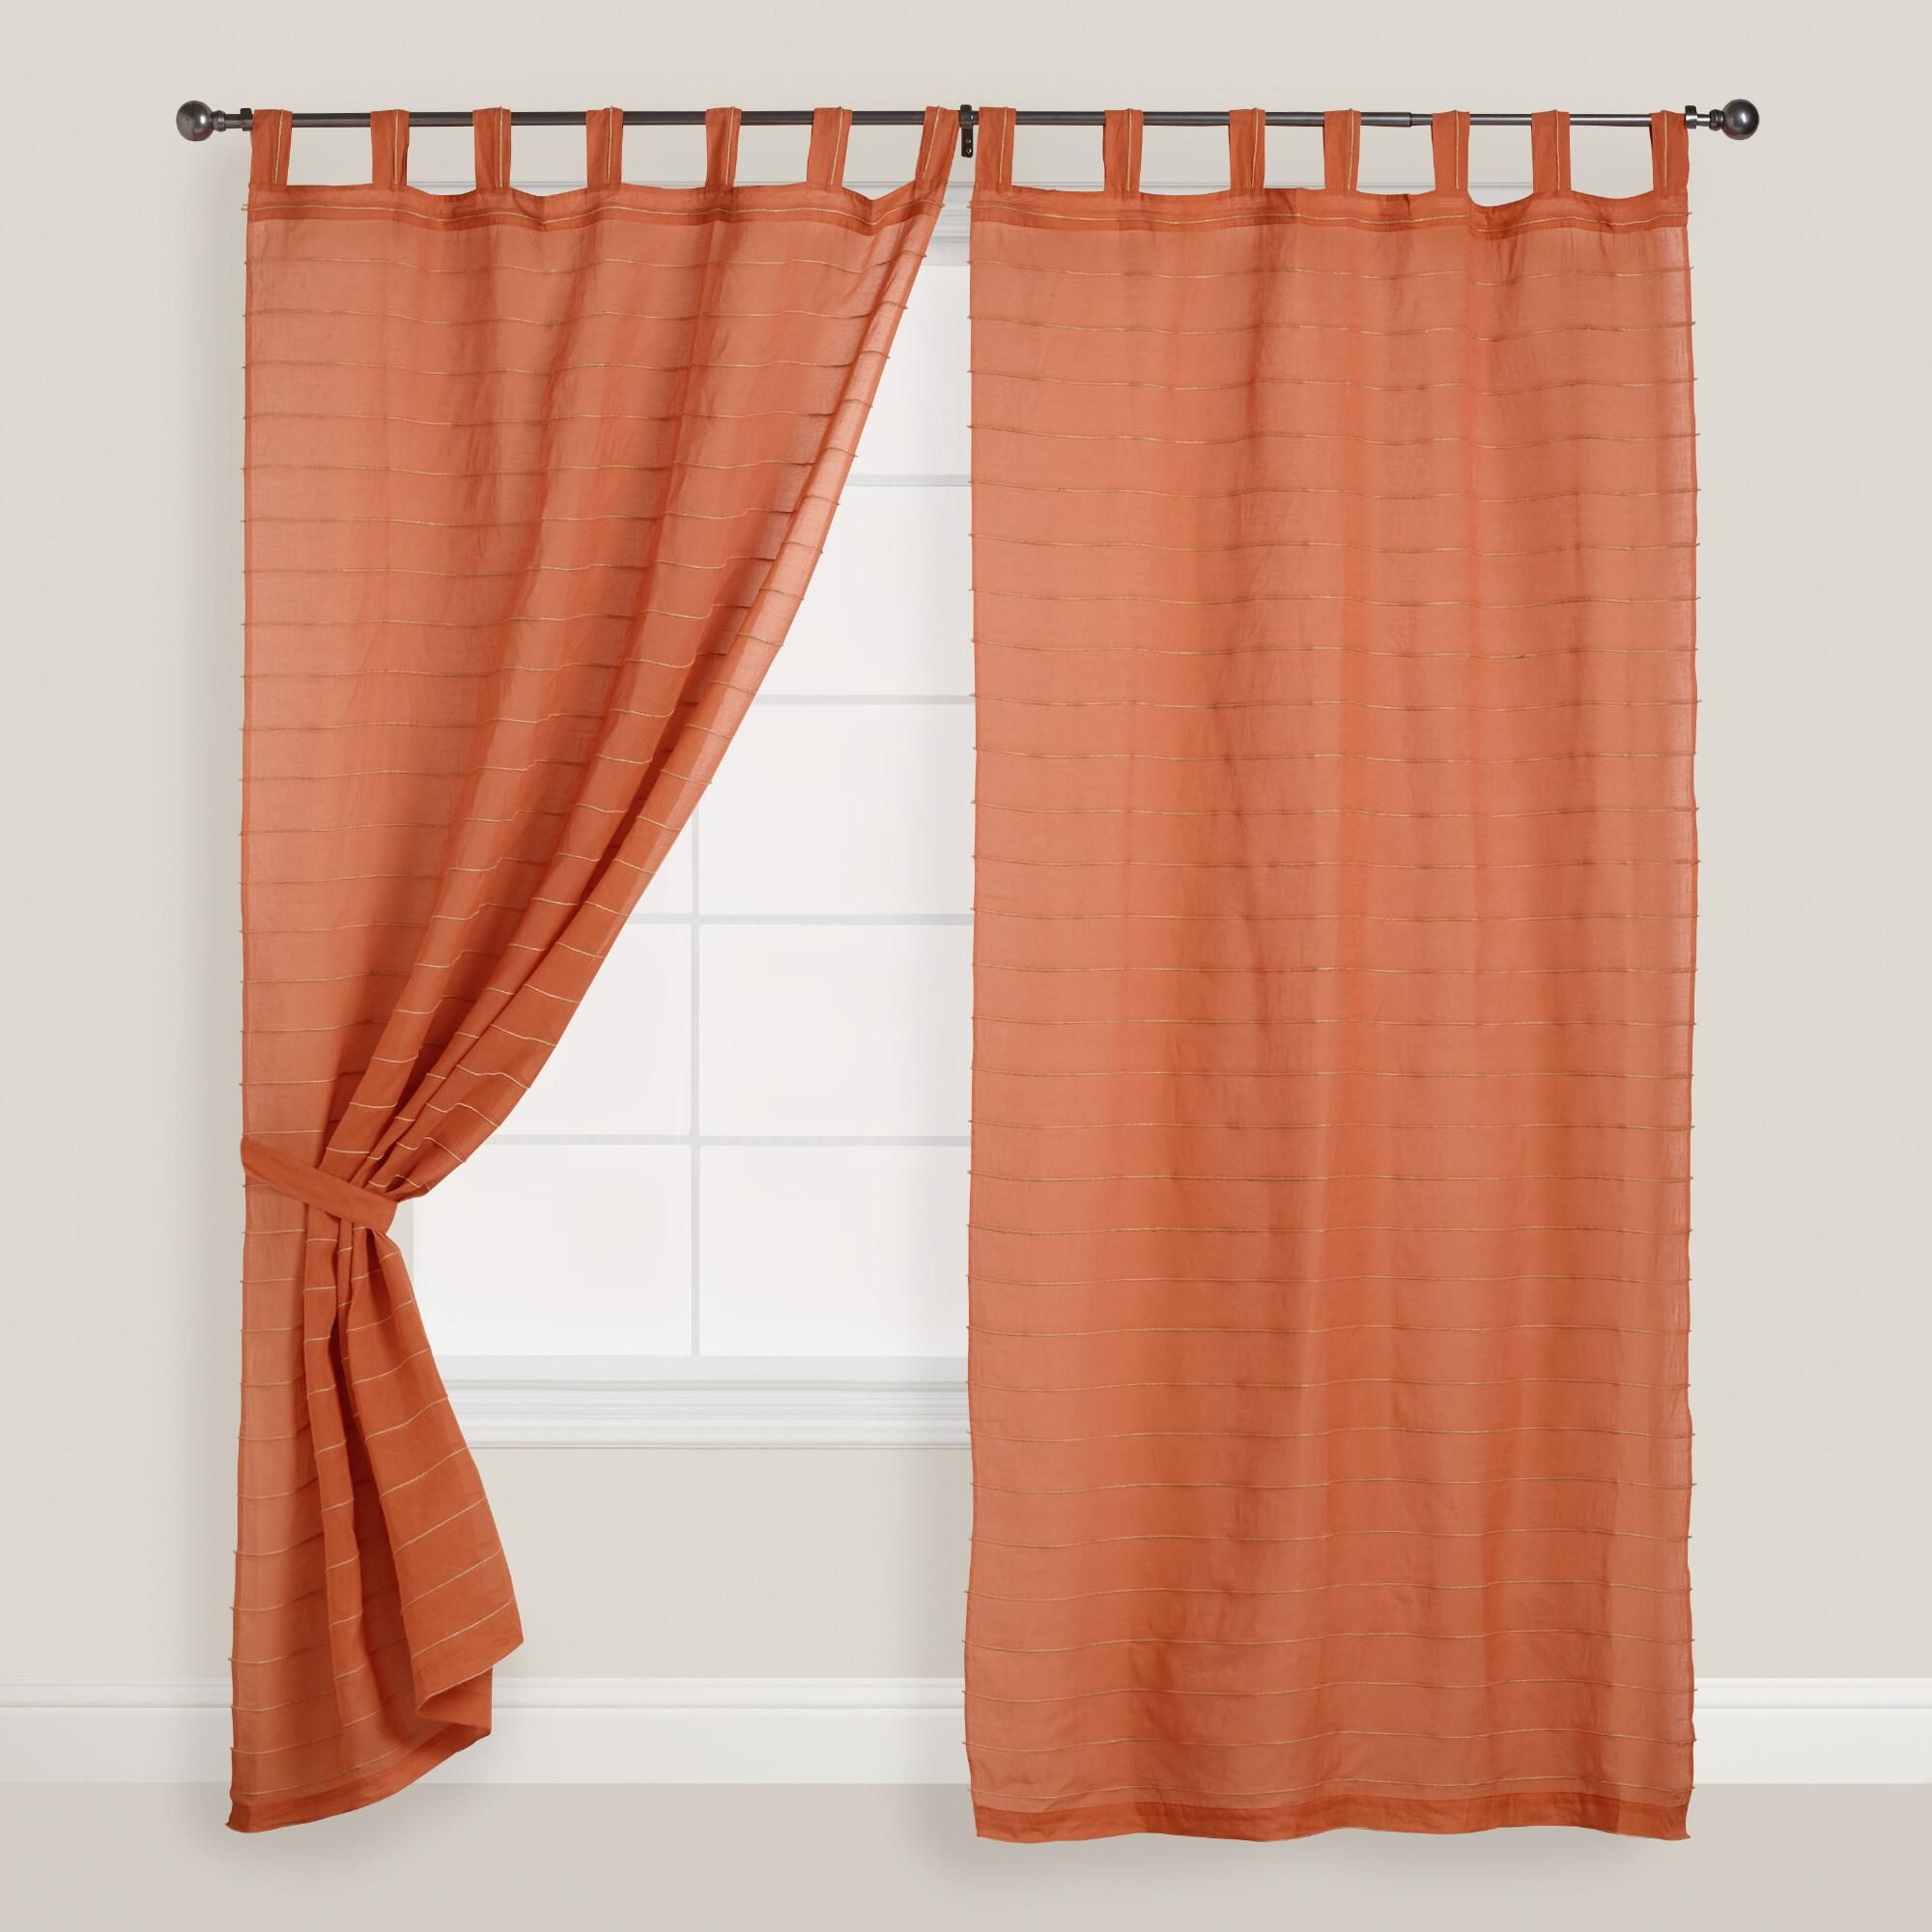 curtain tweed cushion on curtains velvet burnt and is persia the silk woven pin pomegranate orange in